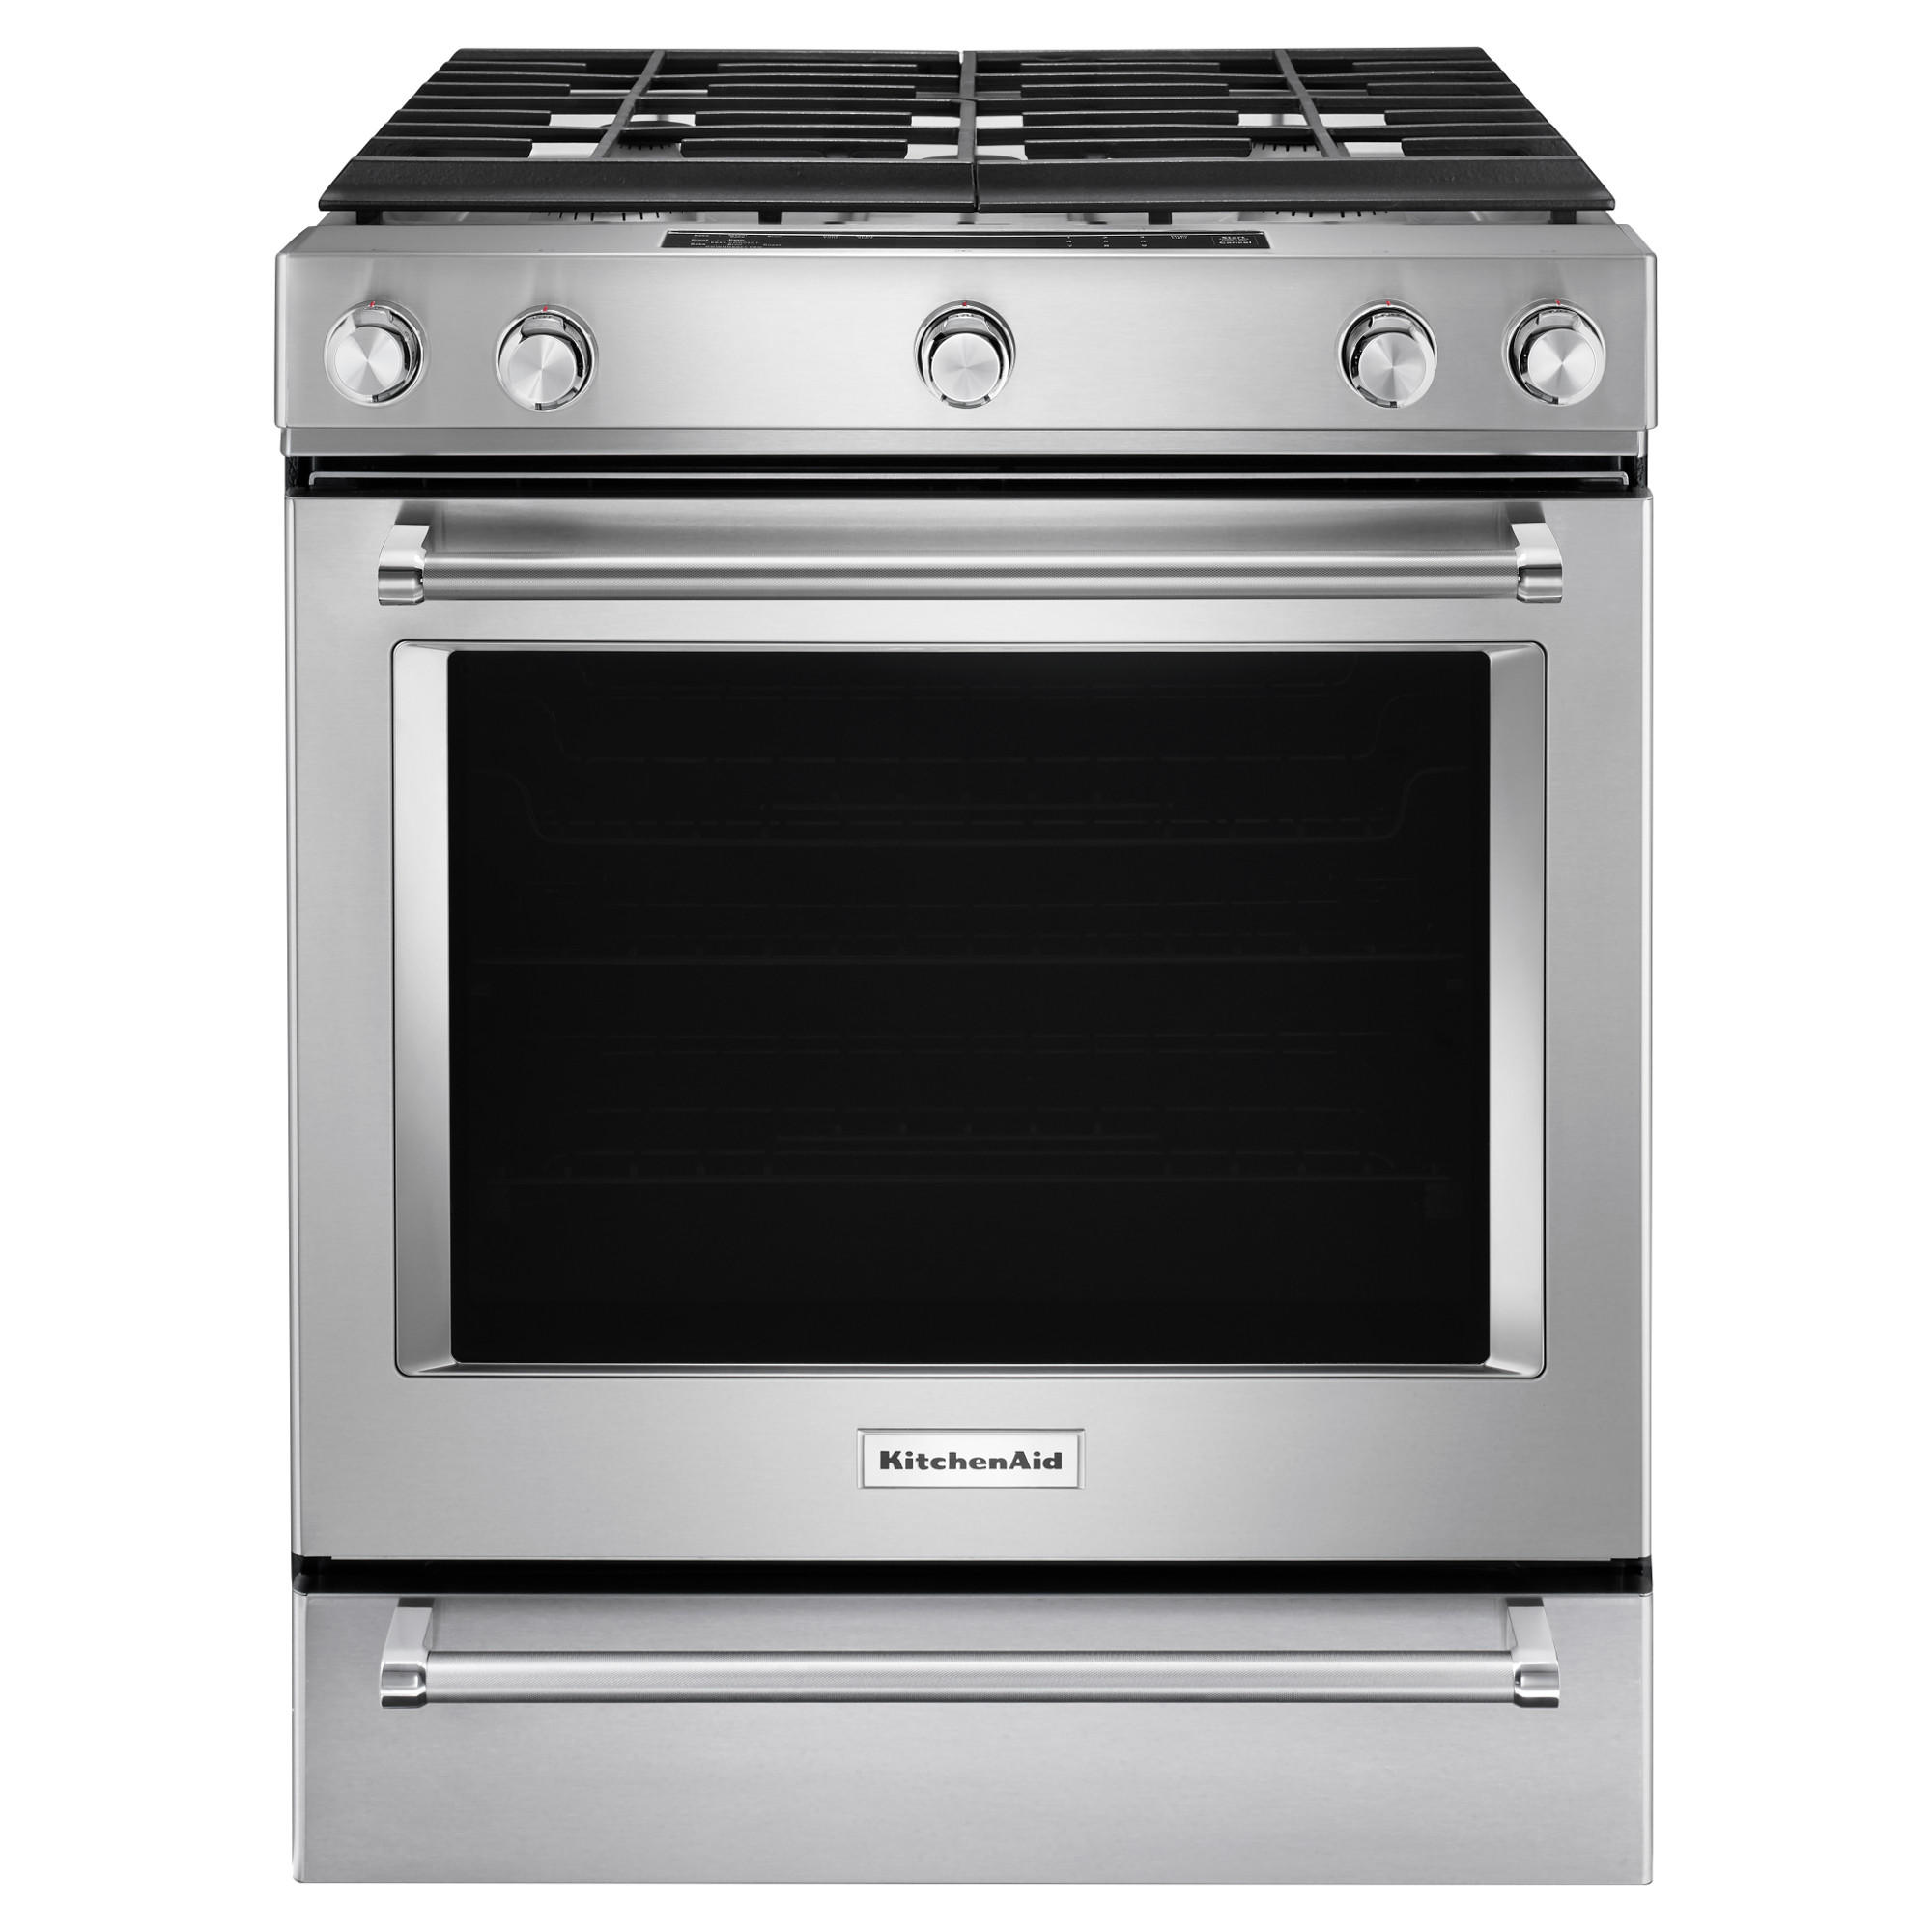 KitchenAid KSGB900ESS 6.5 cu. ft. 5-Burner Gas Convection Slide-in Range - Stainless Steel